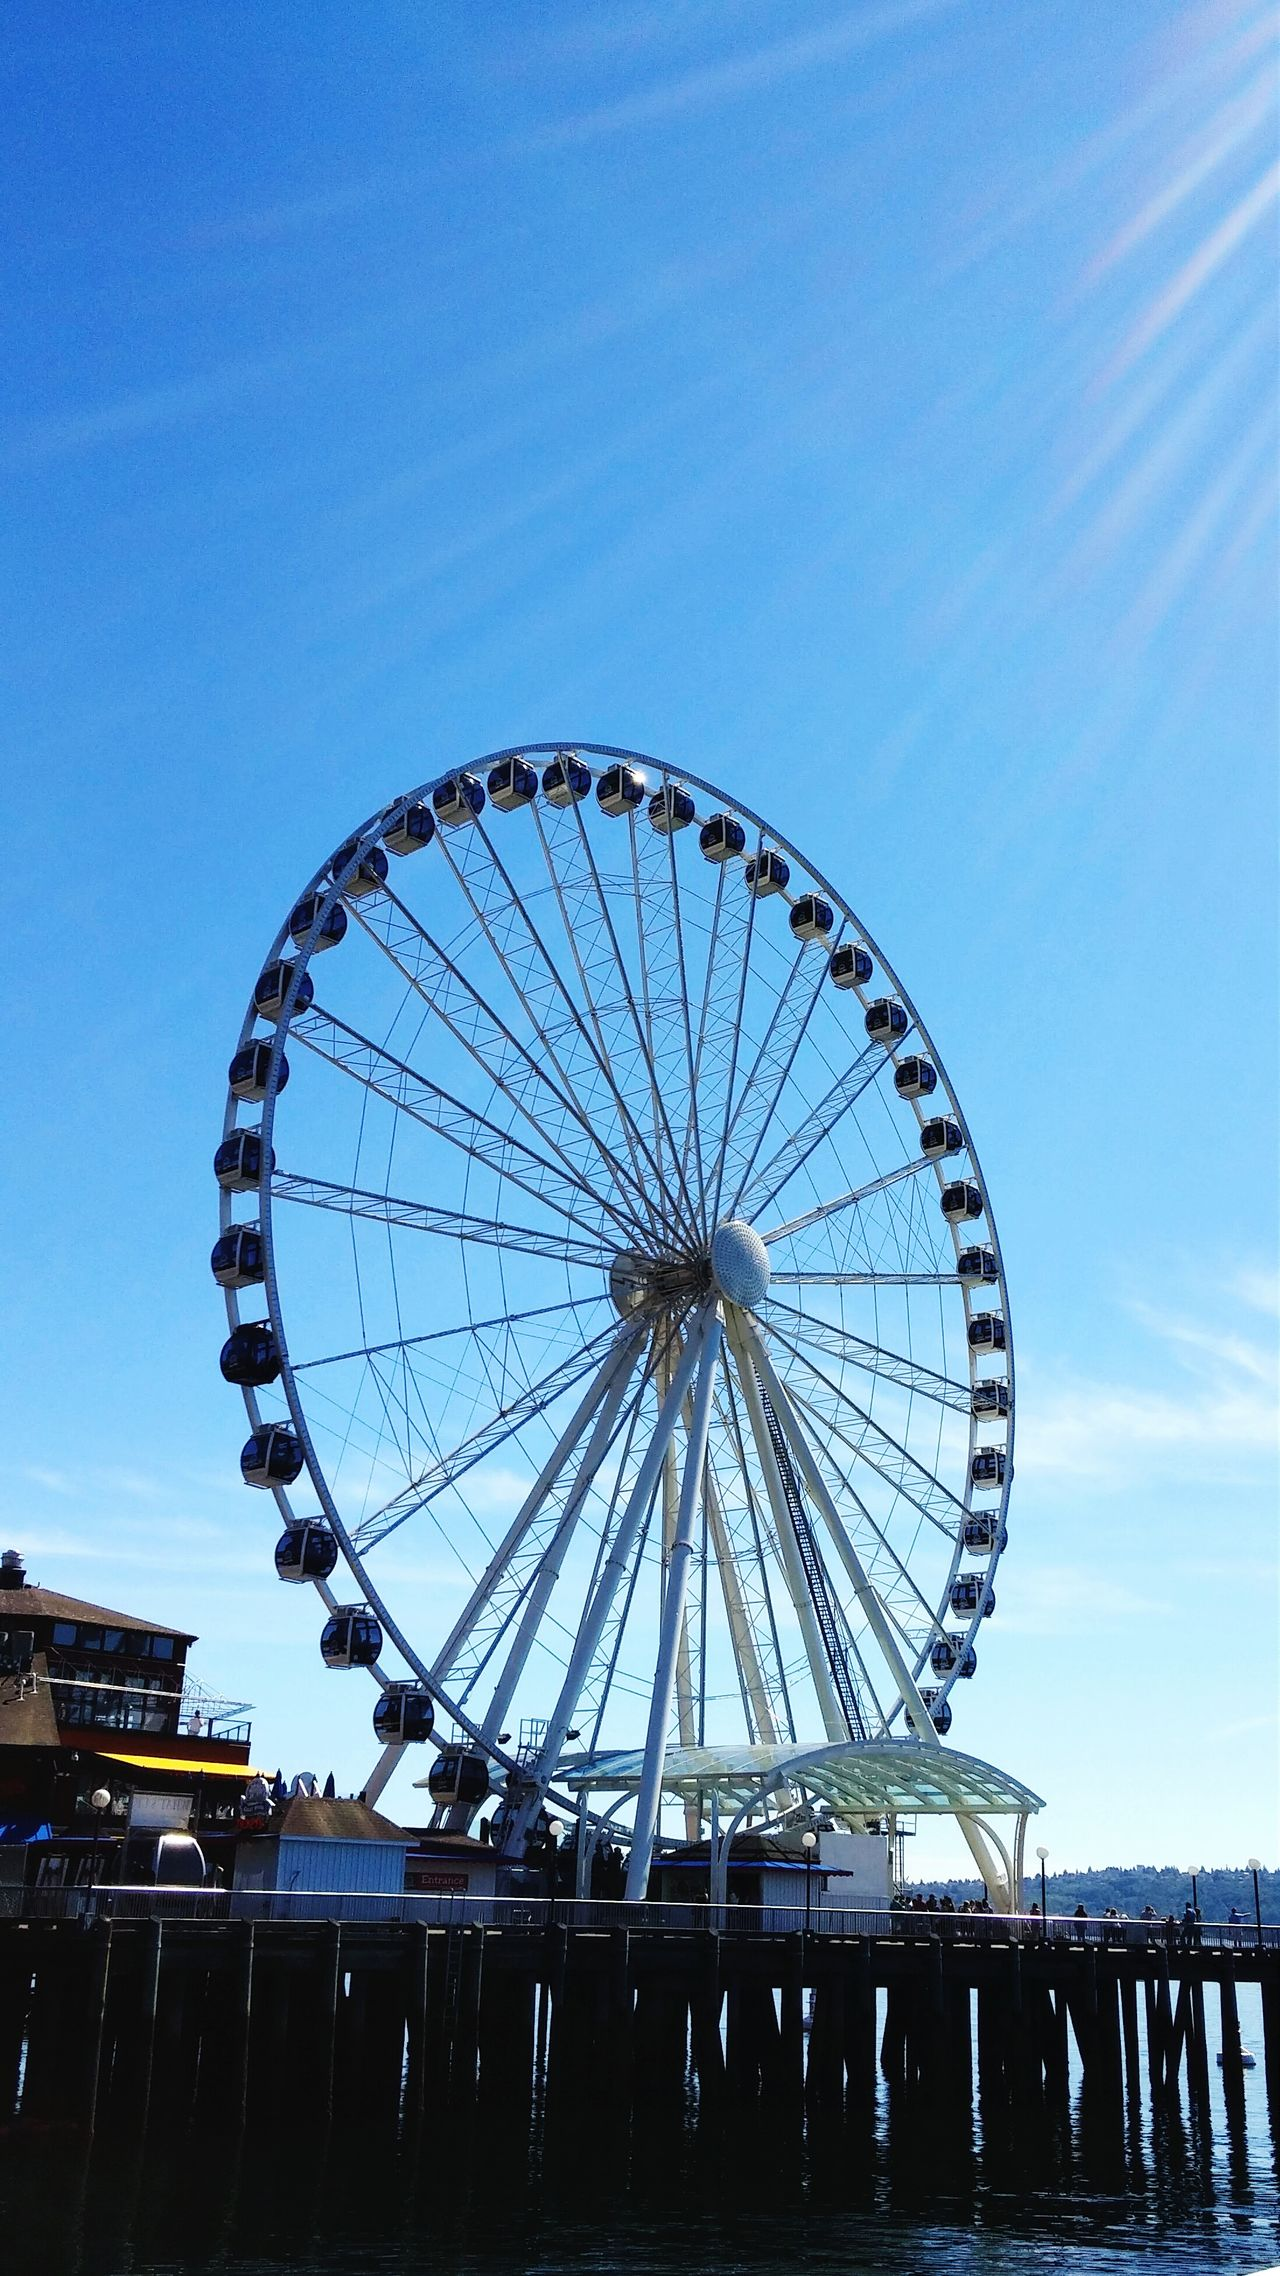 Summer Seattle We saw the wheel for the first time - loved it!